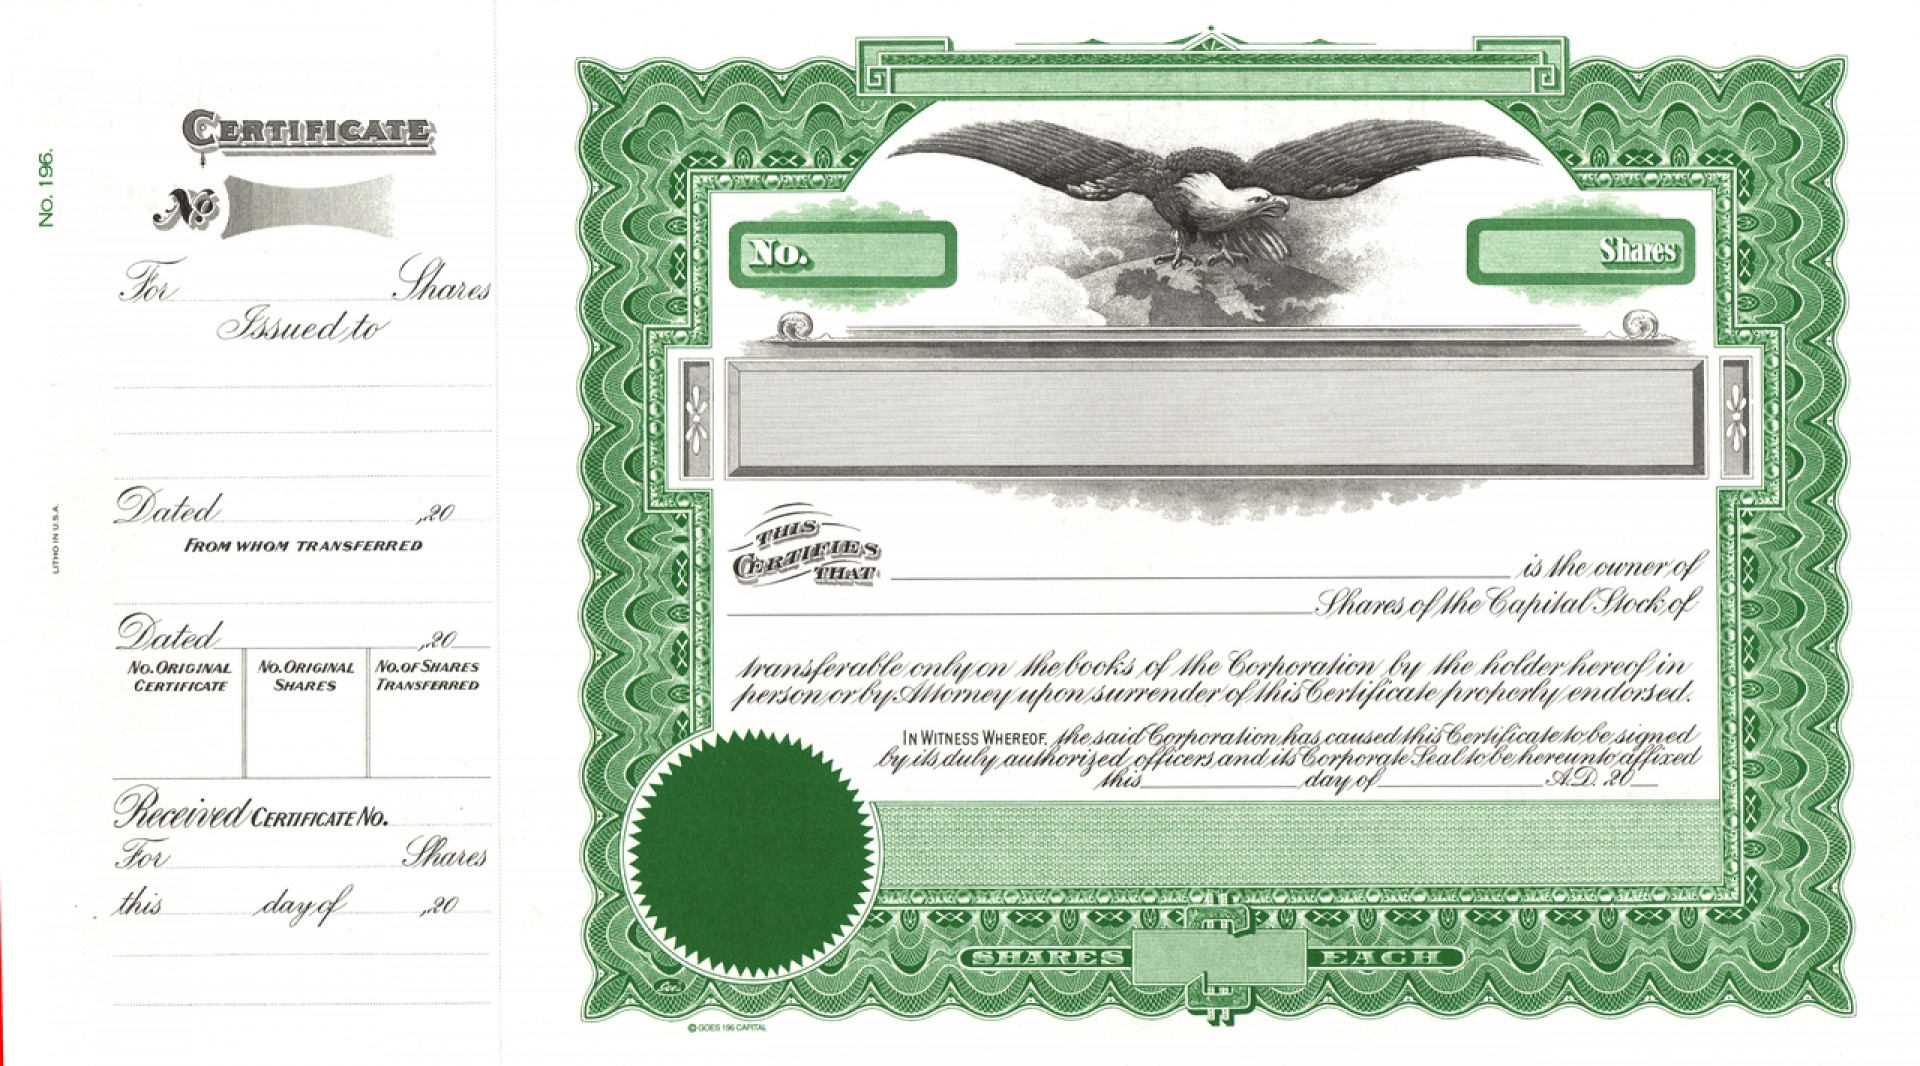 014 Free Stock Certificate Template Ideas Microsoft Word With Regard To Free Stock Certificate Template Download